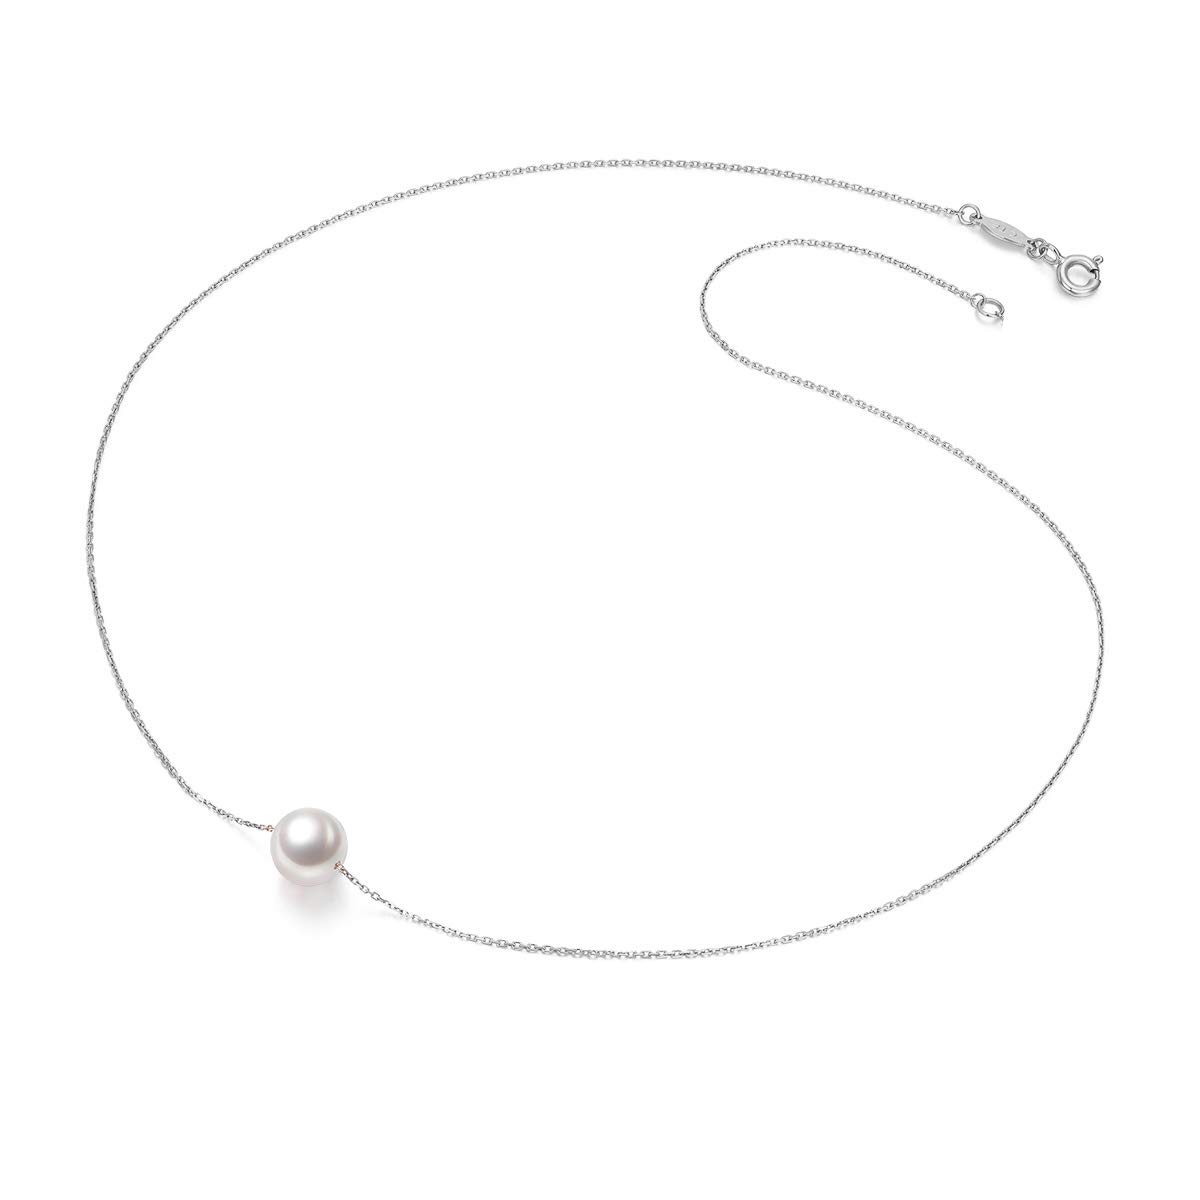 033511701 Amazon.com: Amelery Pearl Necklace Silver White Simulated Single Pendant  Pearl 9-10mm 925 Solid Sterling Silver Singapore Chain 18'' Necklaces for  Women: ...